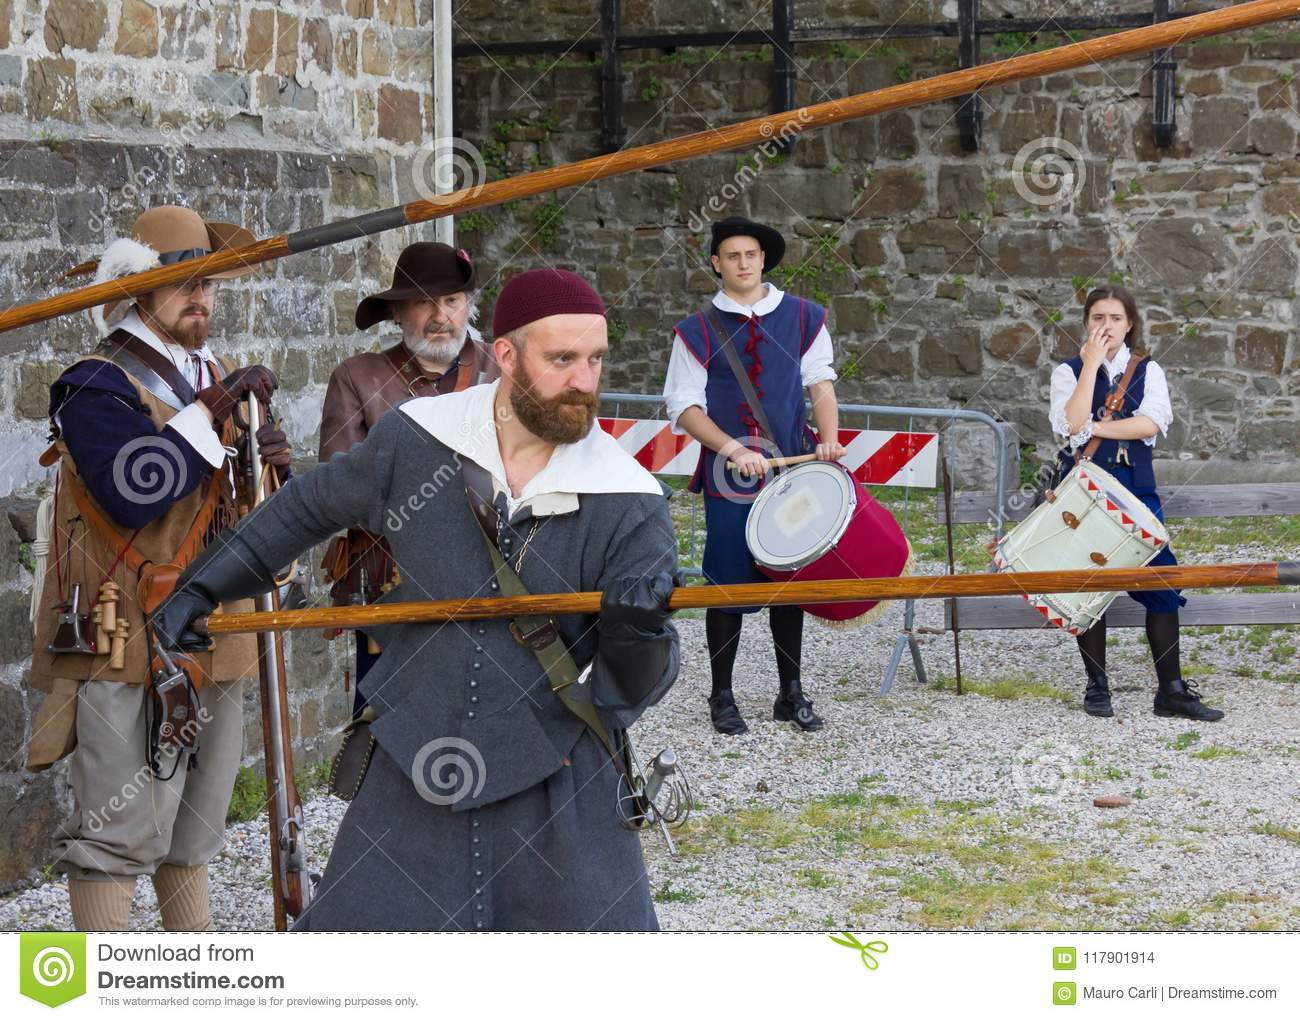 Soldiers of the Venetian Army at the Seventeenth Century Historical Reenactment in Gorizia